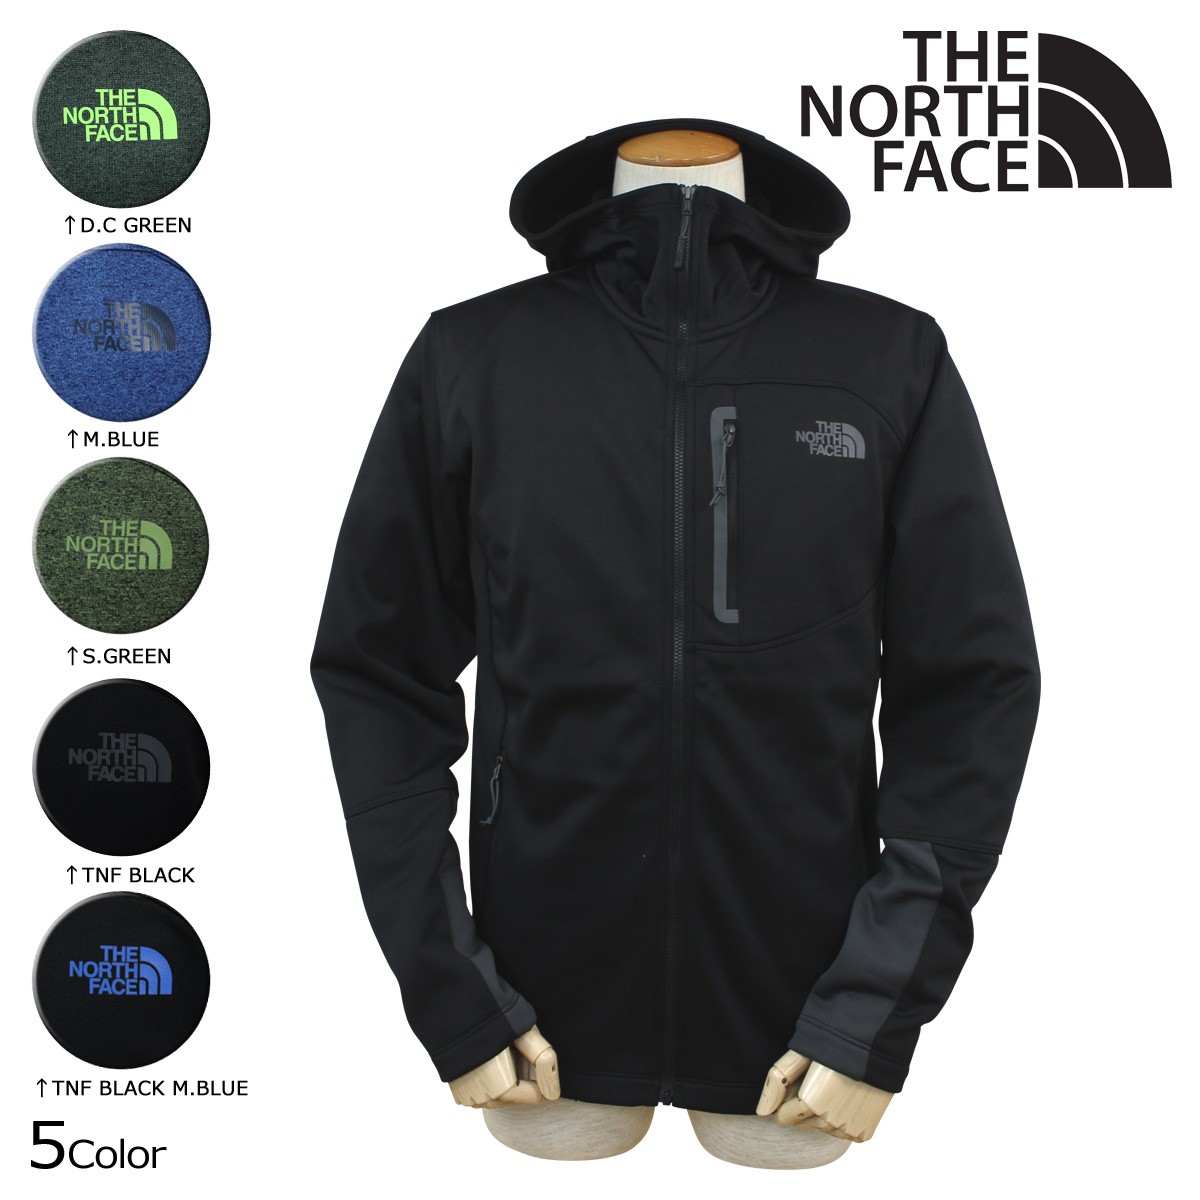 c378b14fe Point 5 x north face THE NORTH FACE mens jacket fleece jacket CUF9 5 color  MEN's CANYONLANDS HOODIE [10/21 new in stock]